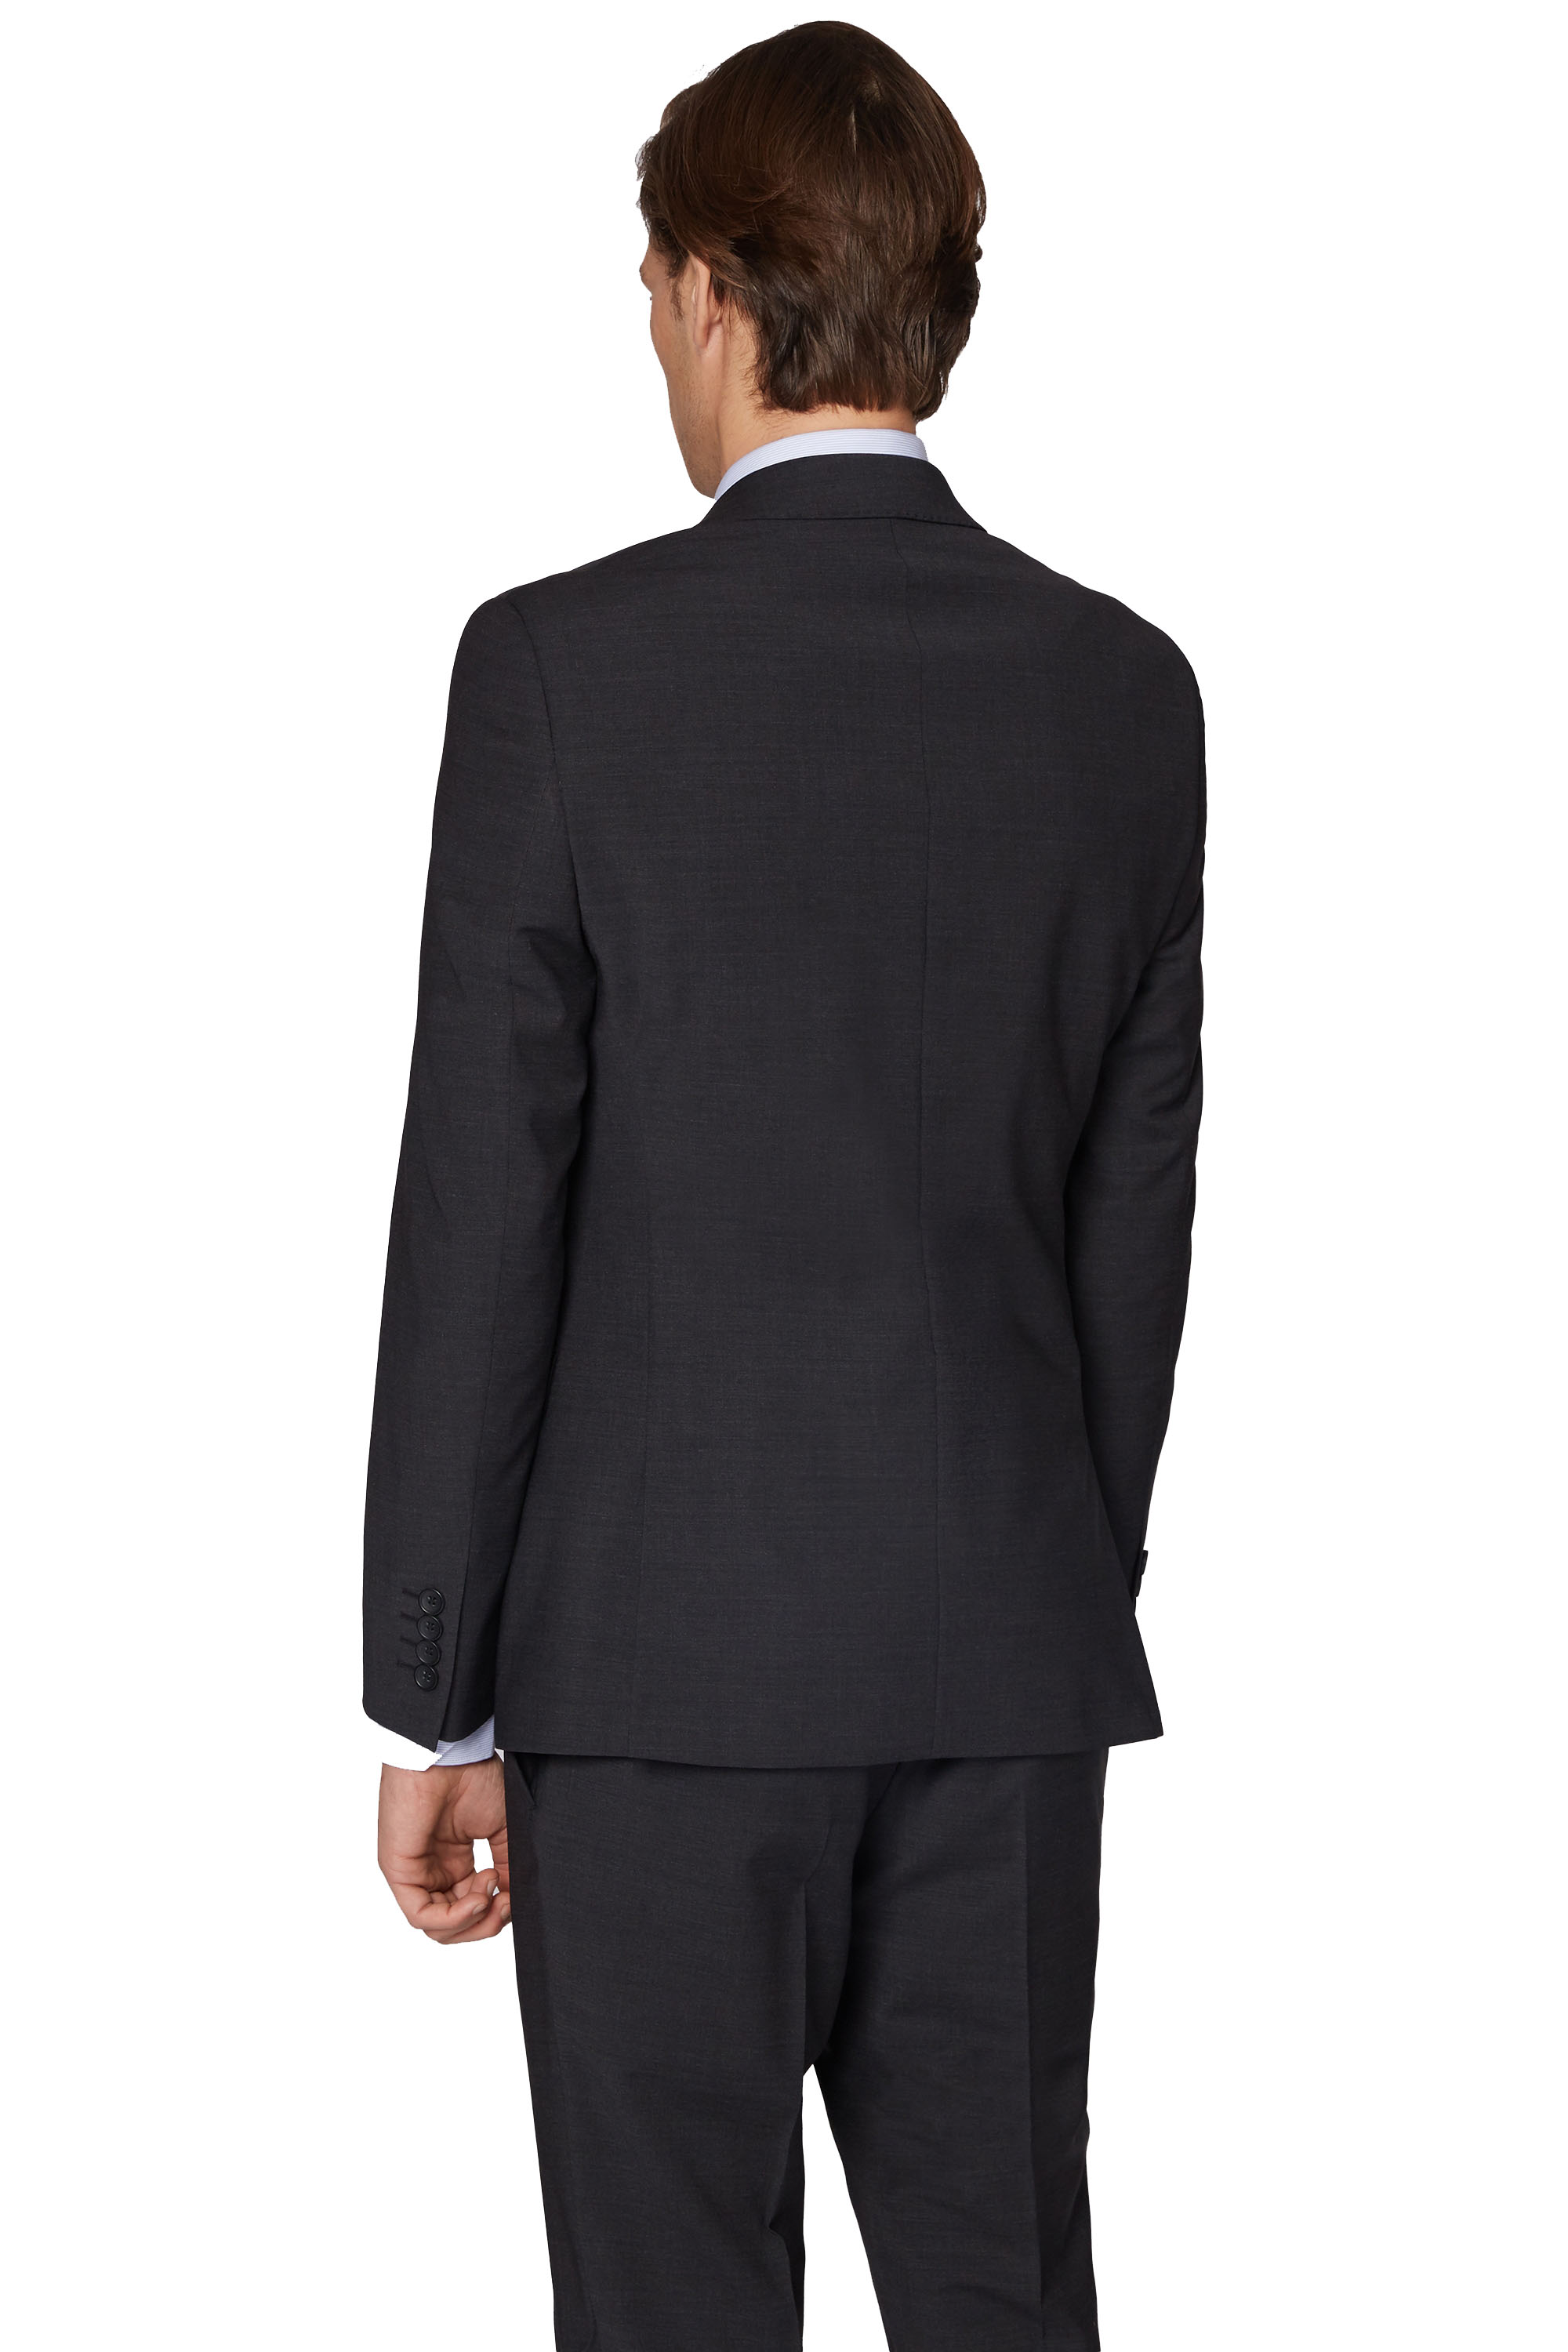 5c32cc9c8 Details about Moss London Performance Mens Charcoal Grey Suit Jacket  SkinnyFit Single Breasted